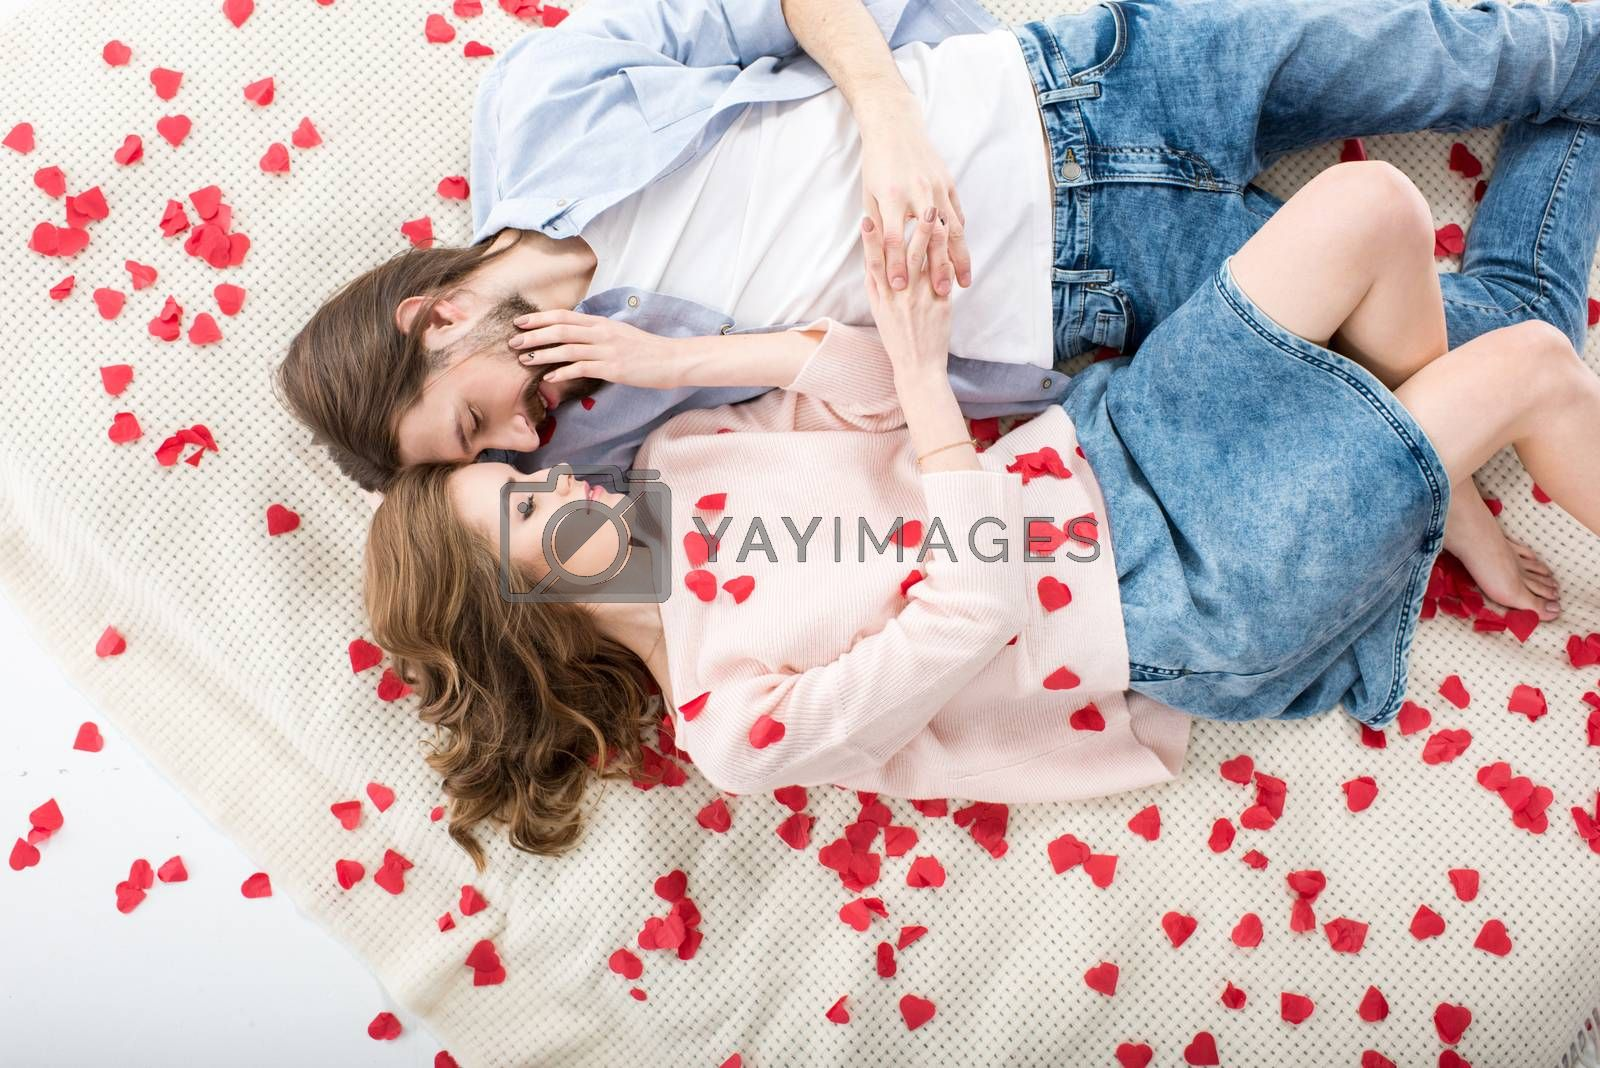 Beautiful couple in love lying and touching each other on red paper hearts